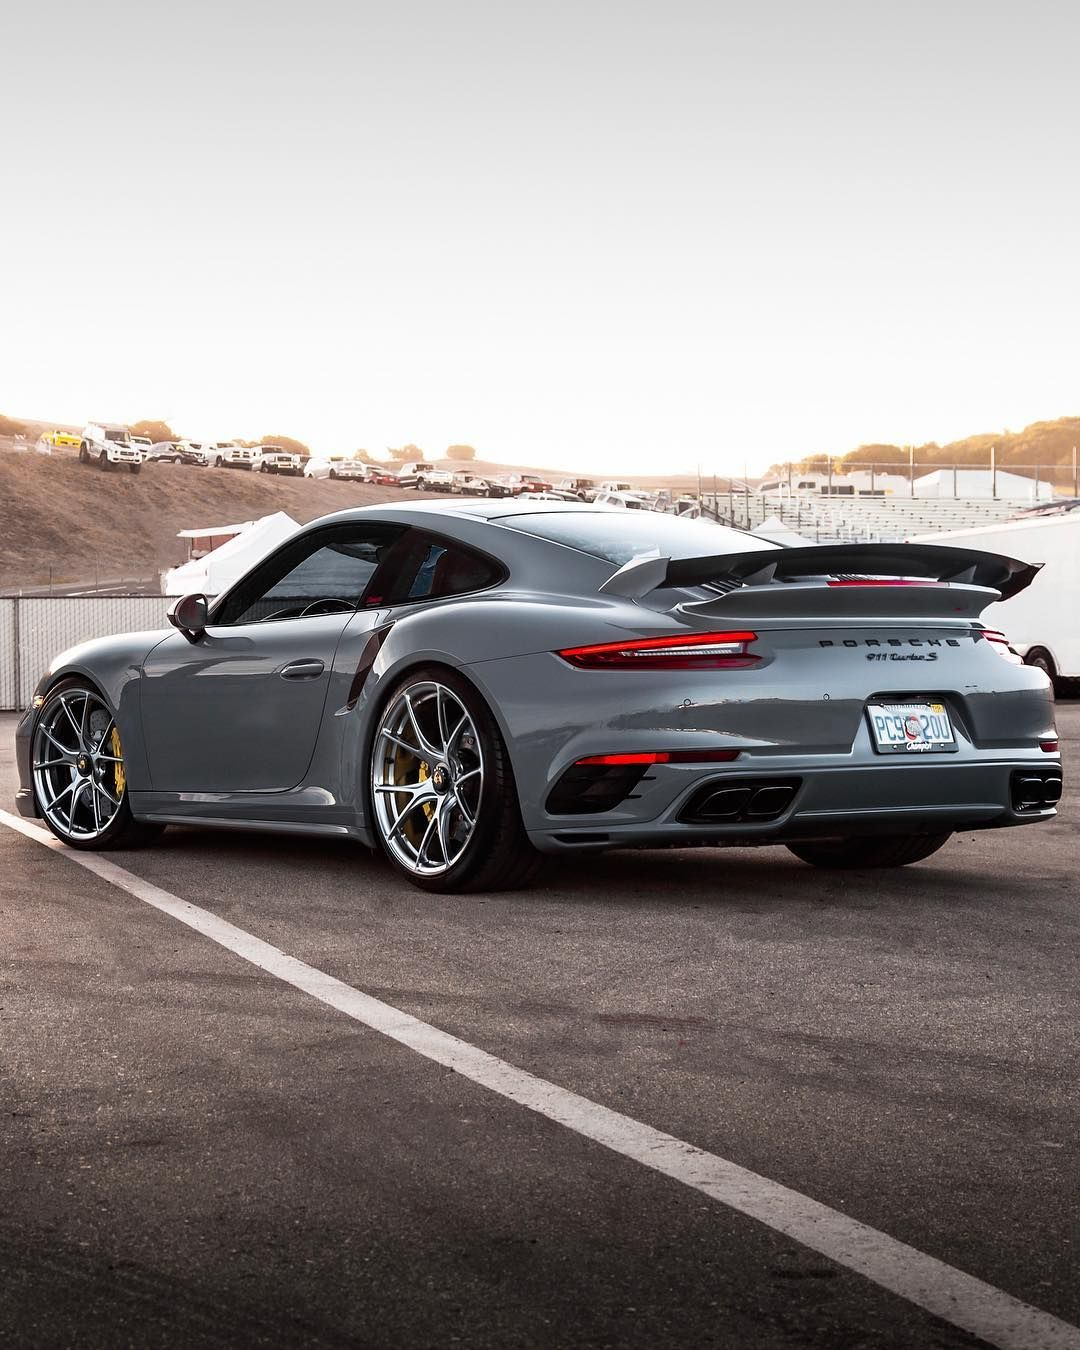 Best Color On A Porsche The Championporsche Nardo Grey Turbo S Porsche Vossen Super Sport Cars Nardo Grey Porsche Sports Car